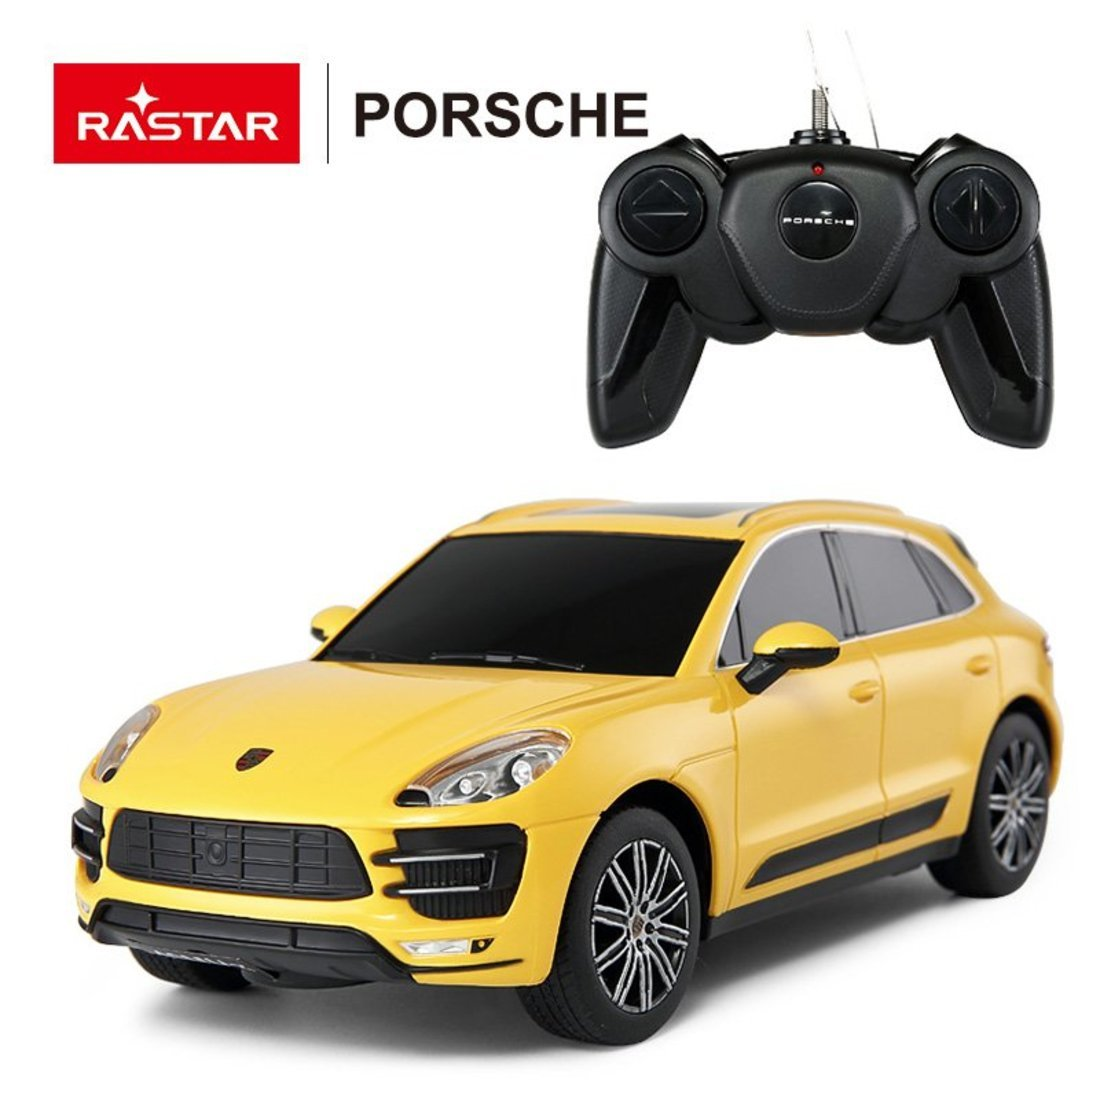 Машина р/у 1:24 Porsche Macan Turbo Цвет Желтый